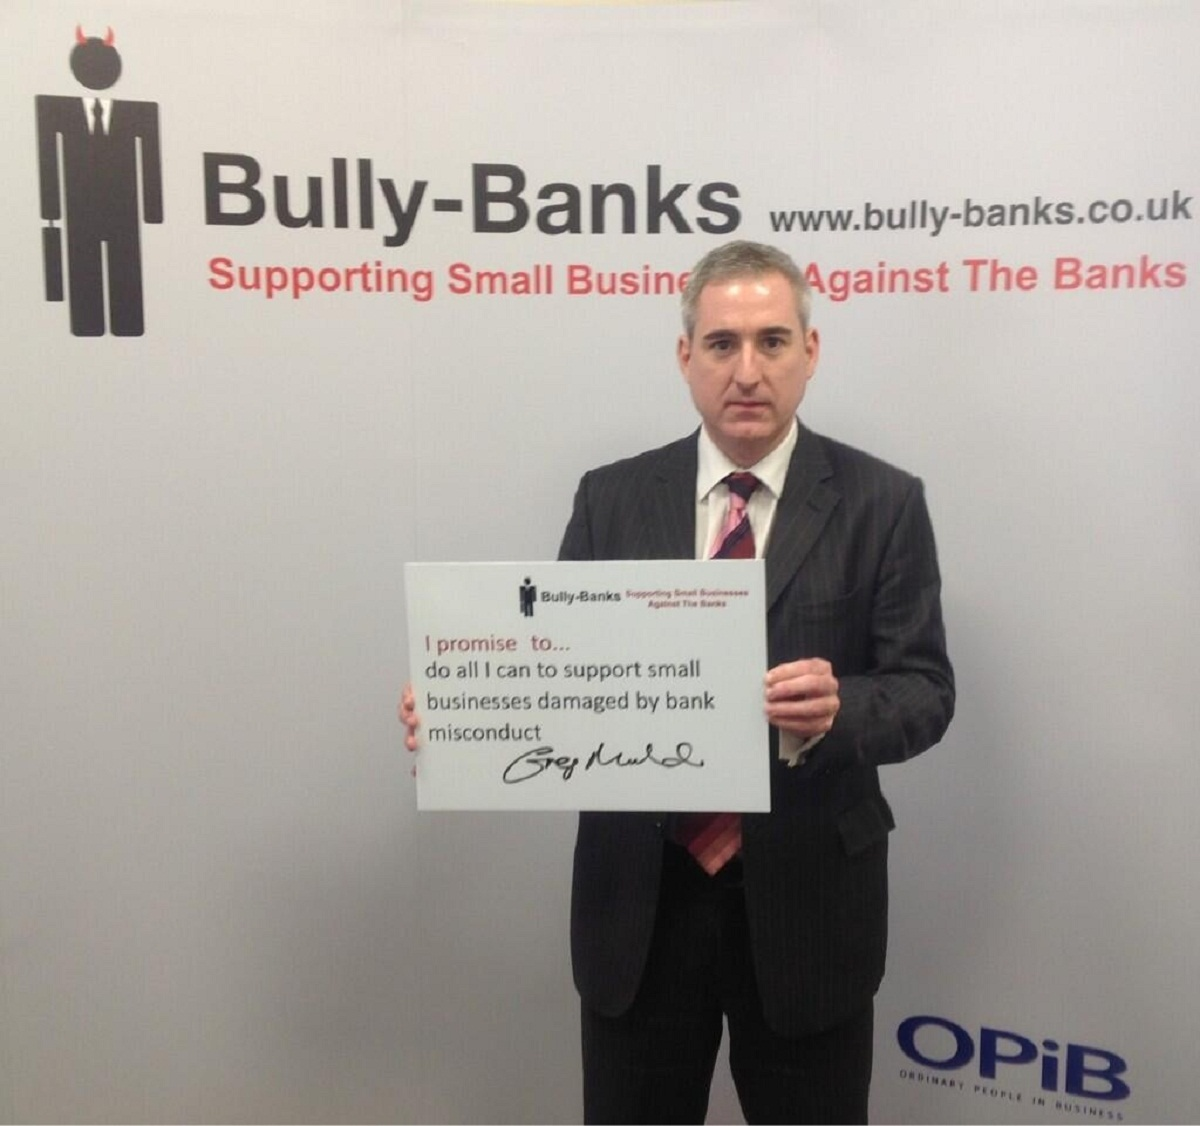 Greg Mulholland MP, who has backed the Bully Bank's campaign